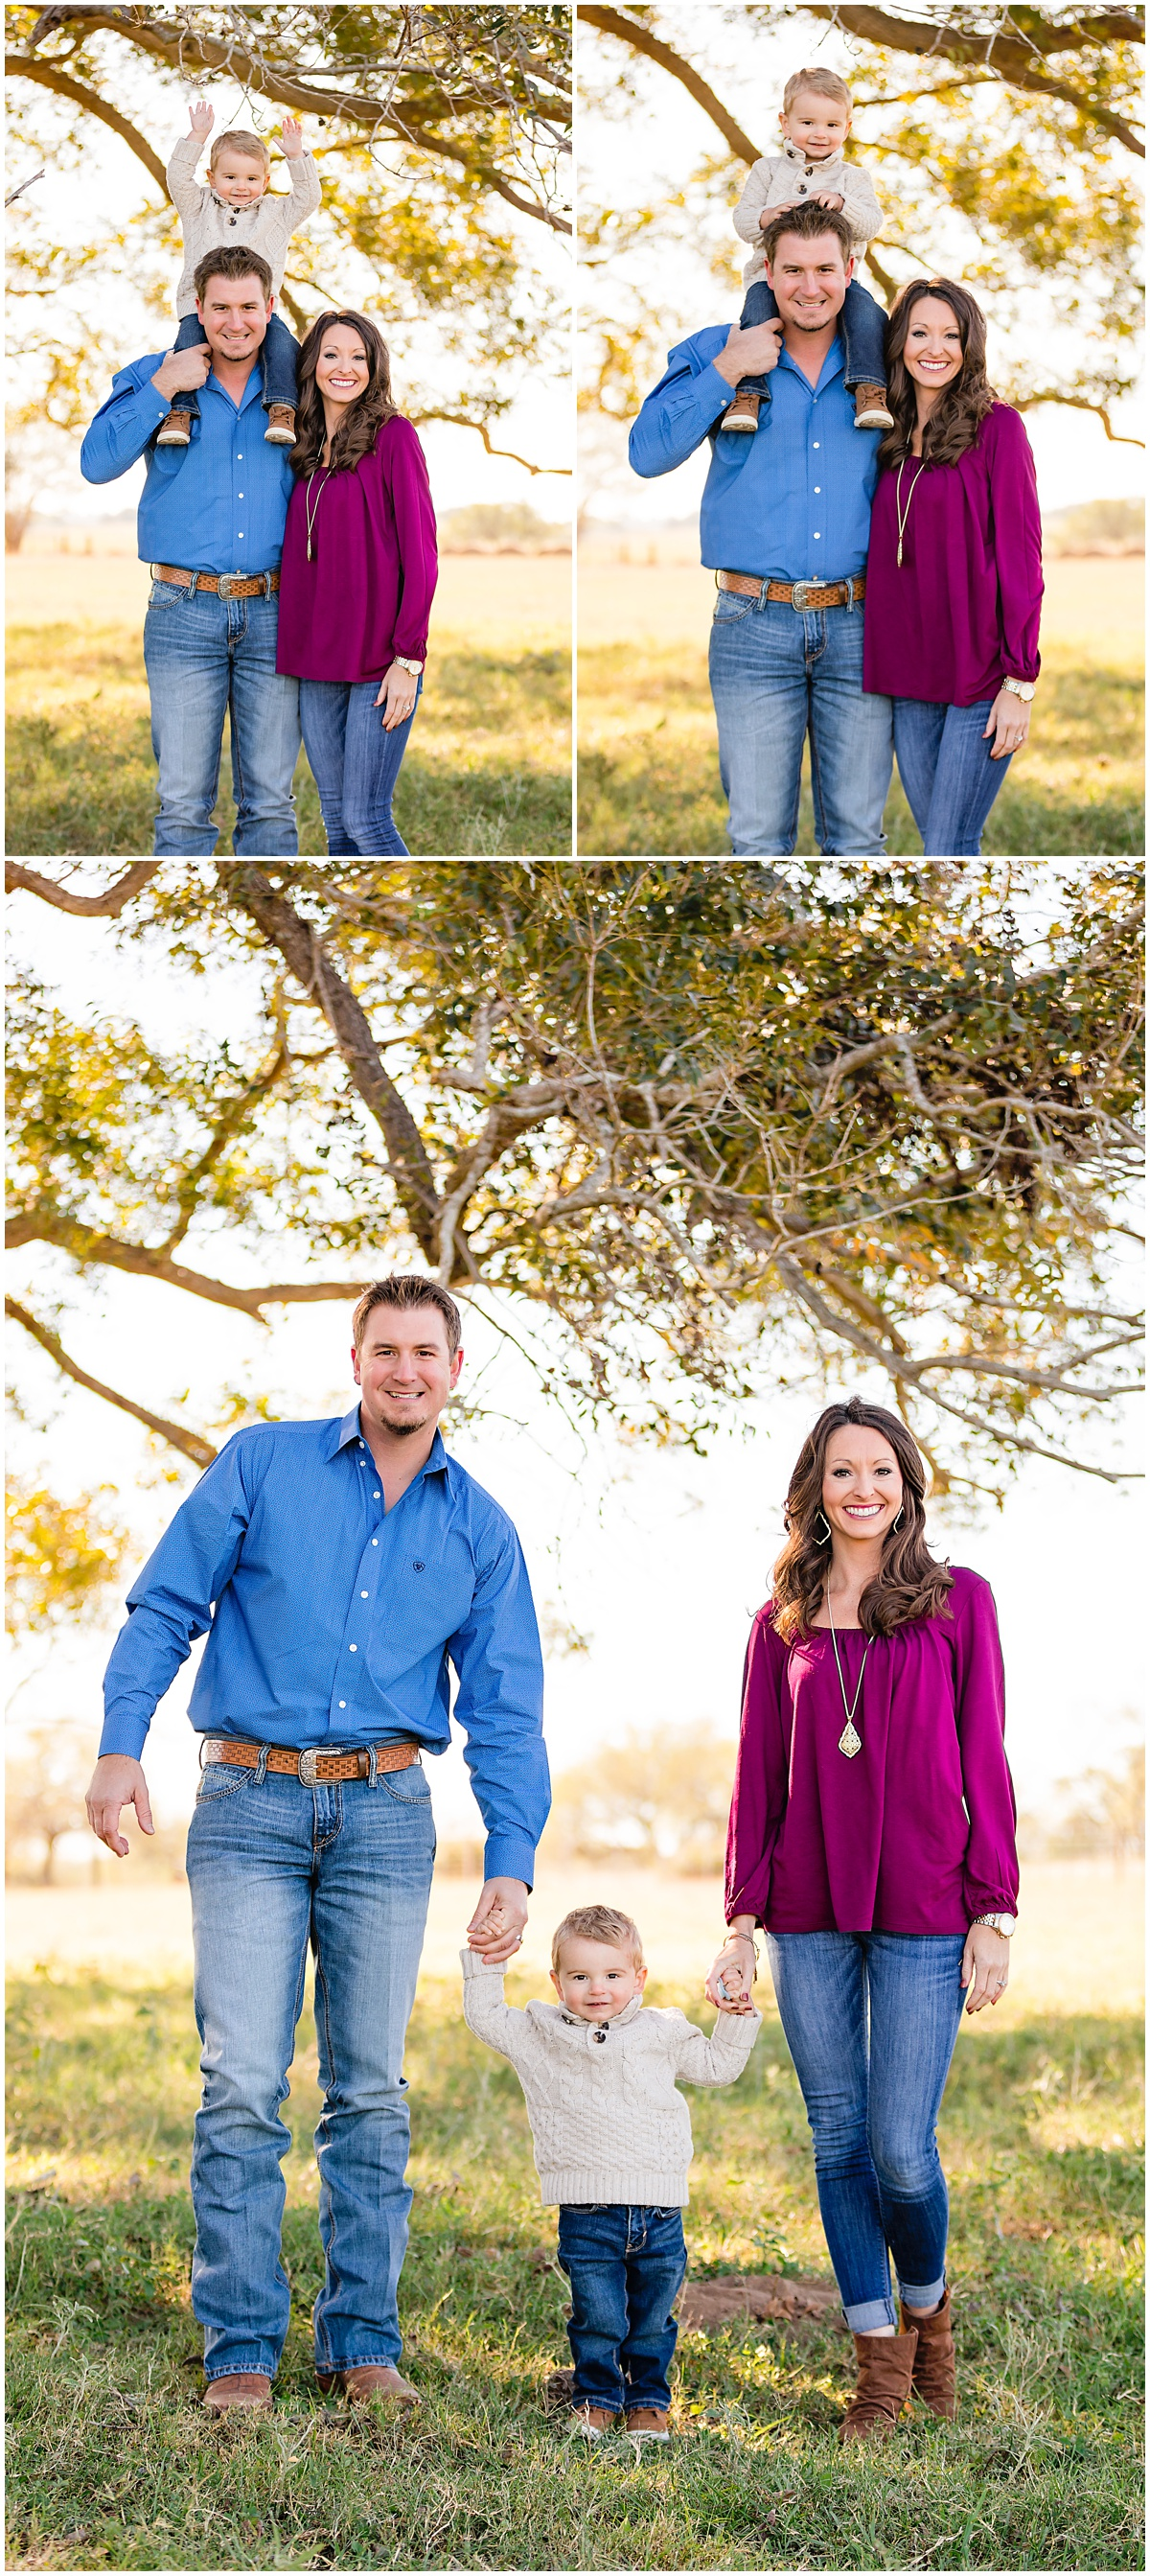 Family-Children-Maternity-Portraits-San-Antonio-Hill-Country-Texas-Carly-Barton-Photography_0063.jpg